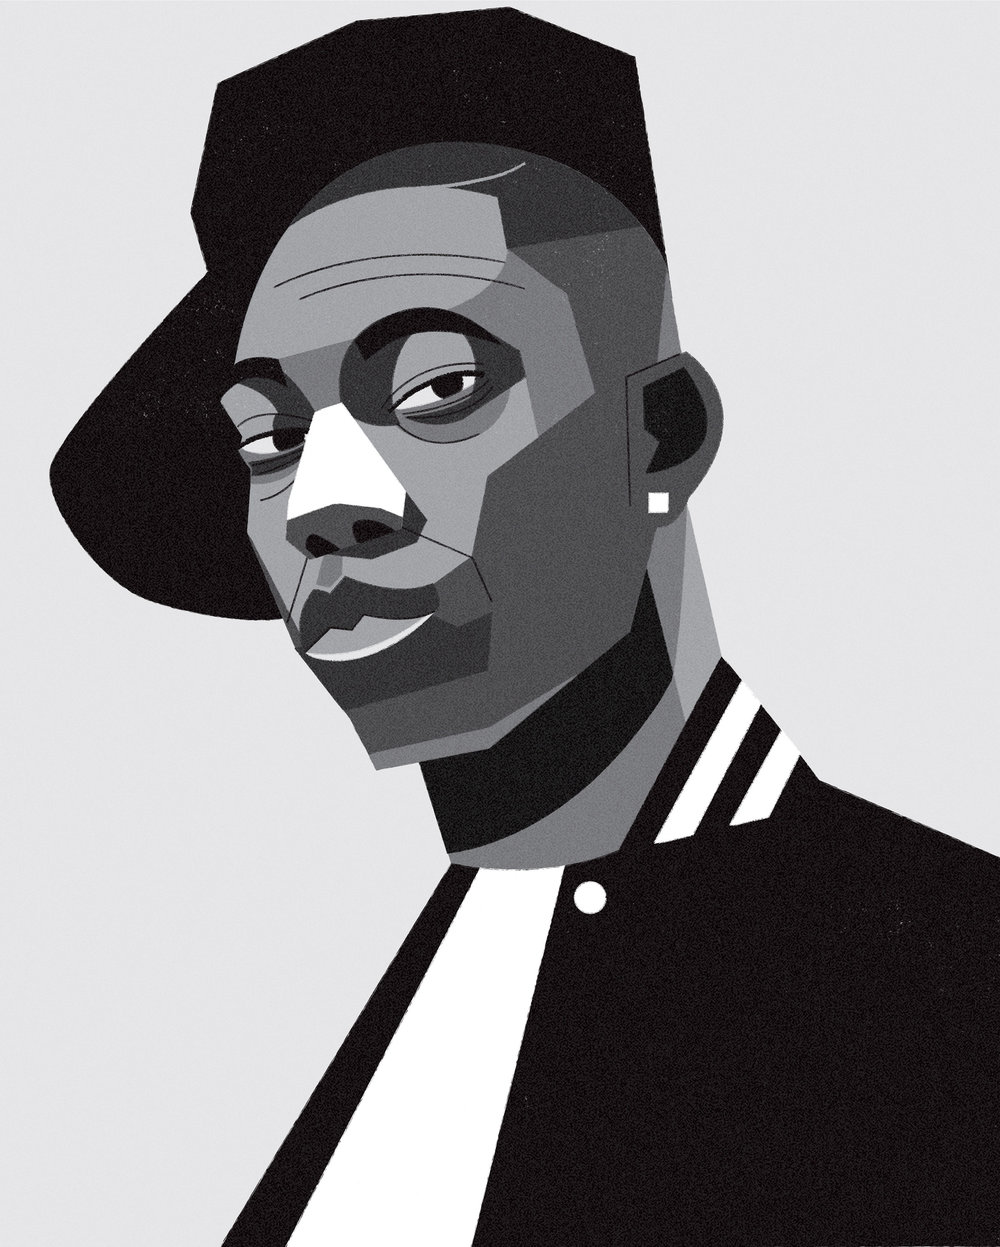 dale edwin murray freelance illustrator dizzy rascal grime uk portrait illustration